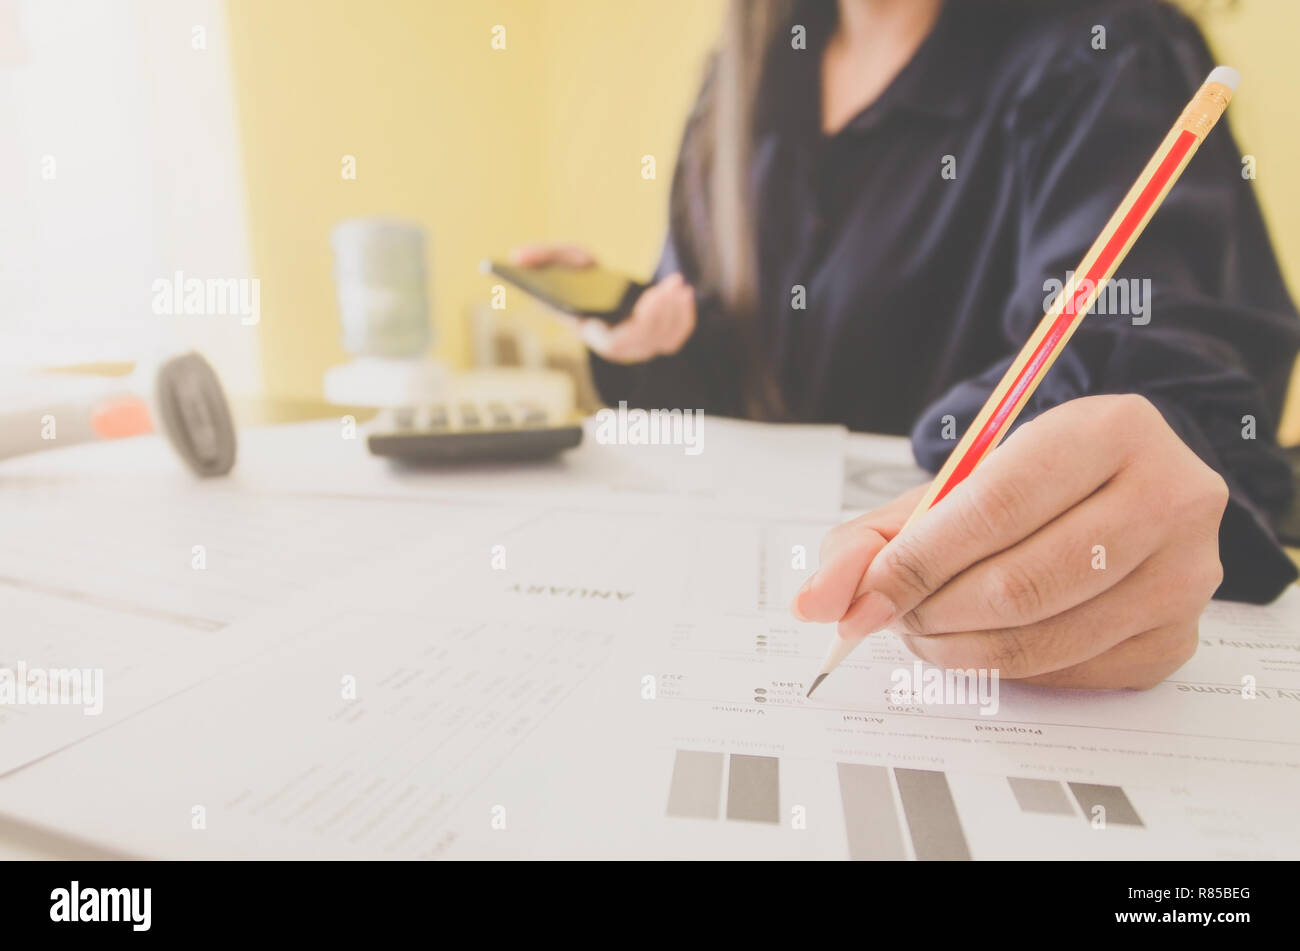 Business concept of financial and accounting with human hand are holding smartphone and writing, Finance report and with paper sheet of planning data  Stock Photo